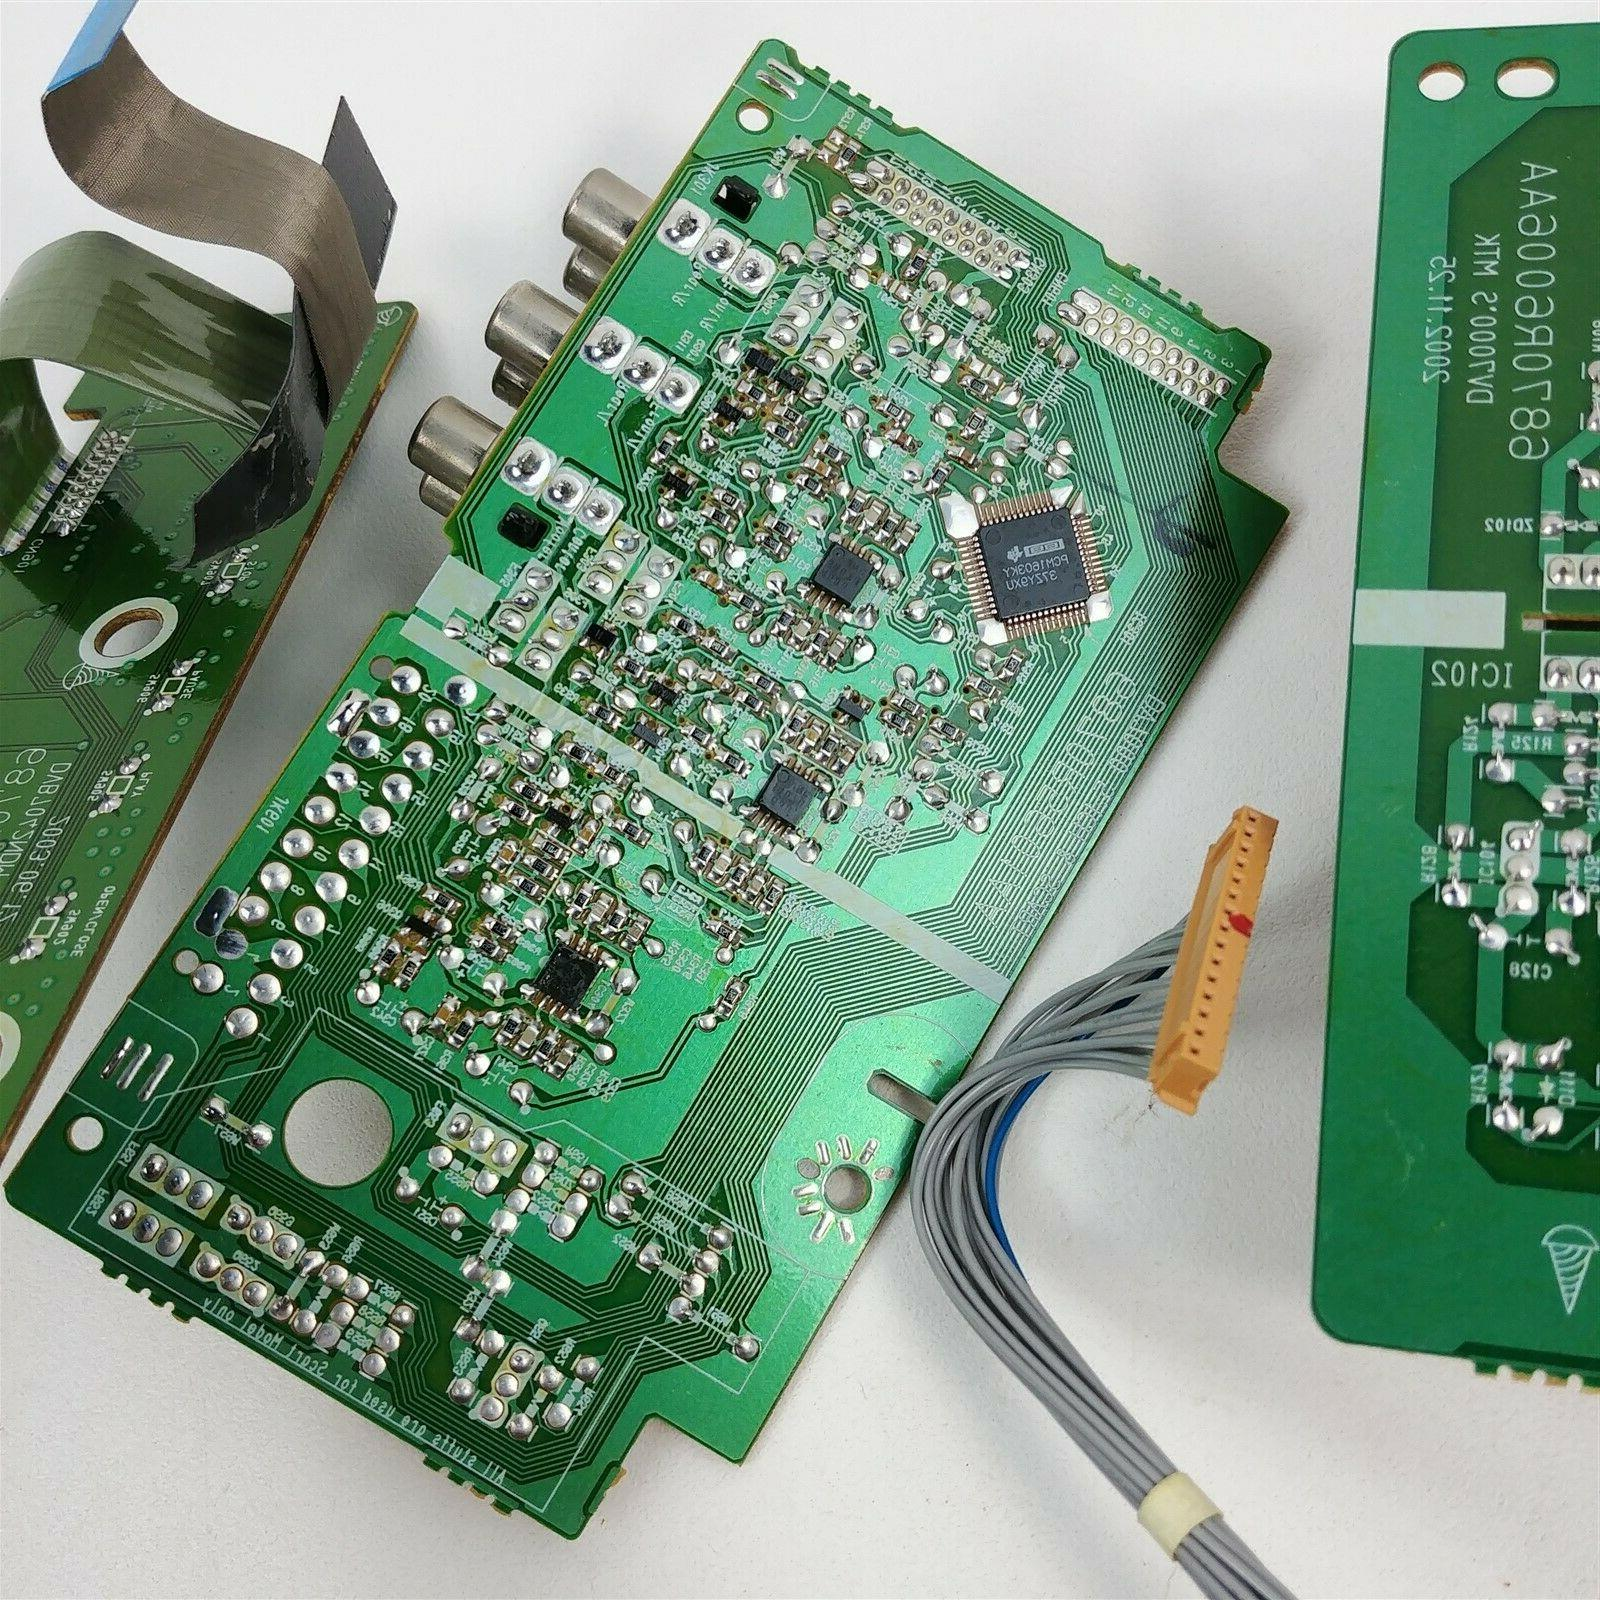 Toshiba DVD Player Replacement Internal Electrical Motherboard